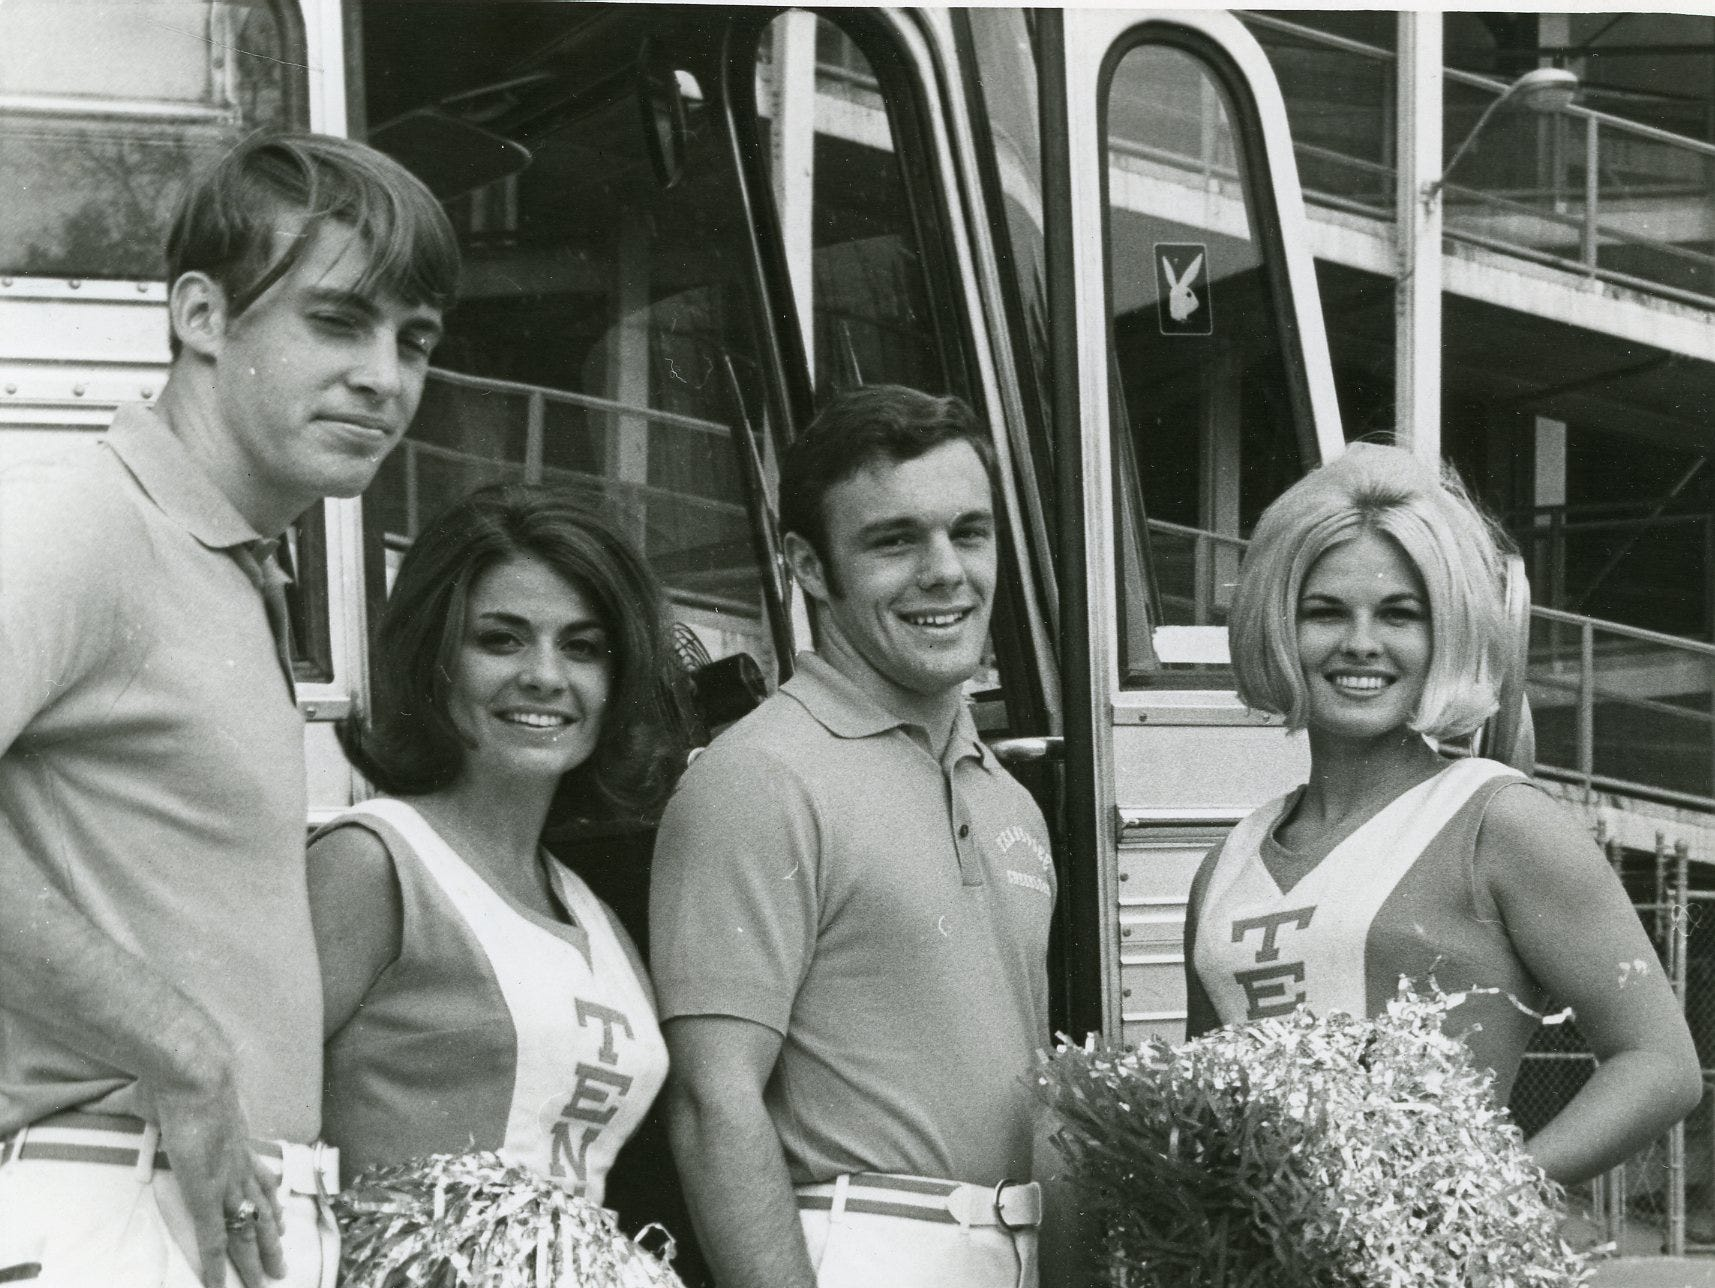 UT cheerleaders Joe Kitchell, Jeannie Gilbert, Bob Bratton and Christy Jones, October, 1969.